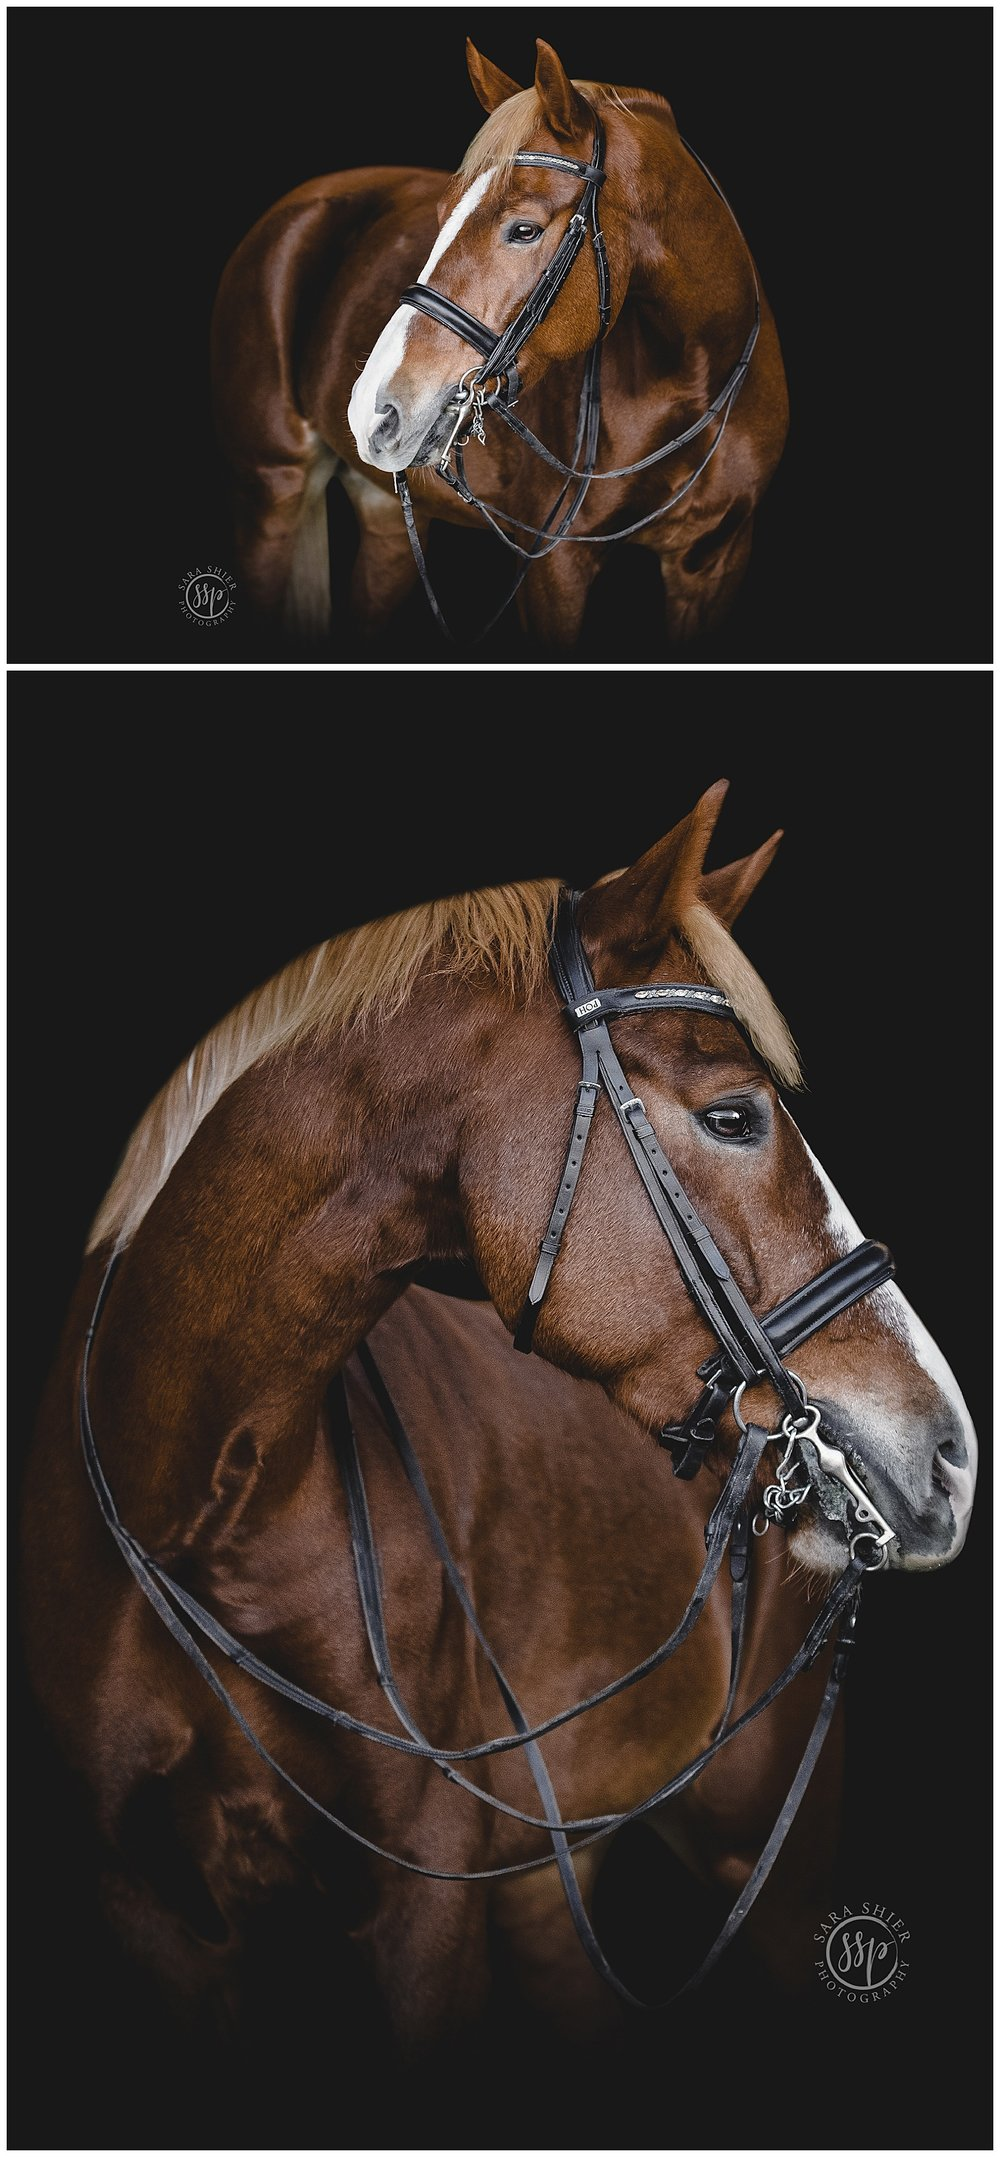 Black Background Horse Rider Equine Photographer Southern California Sara Shier Photography SoCal Equestrian Cowgirl_0216.jpg